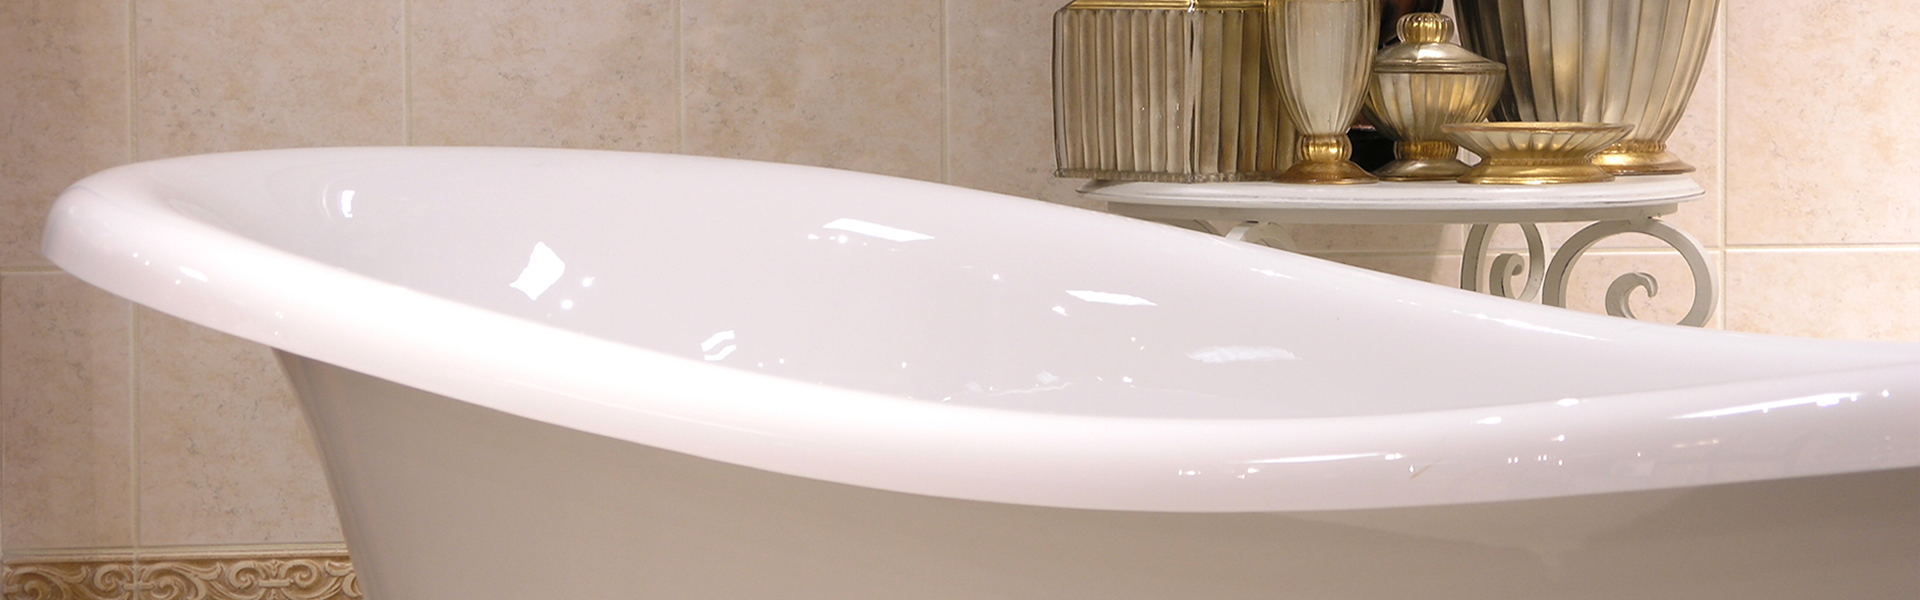 BATHTUB REFINISHING IN AUSTIN TX CULTURED AND LAMINATE FORMICA - Bathtub restoration companies